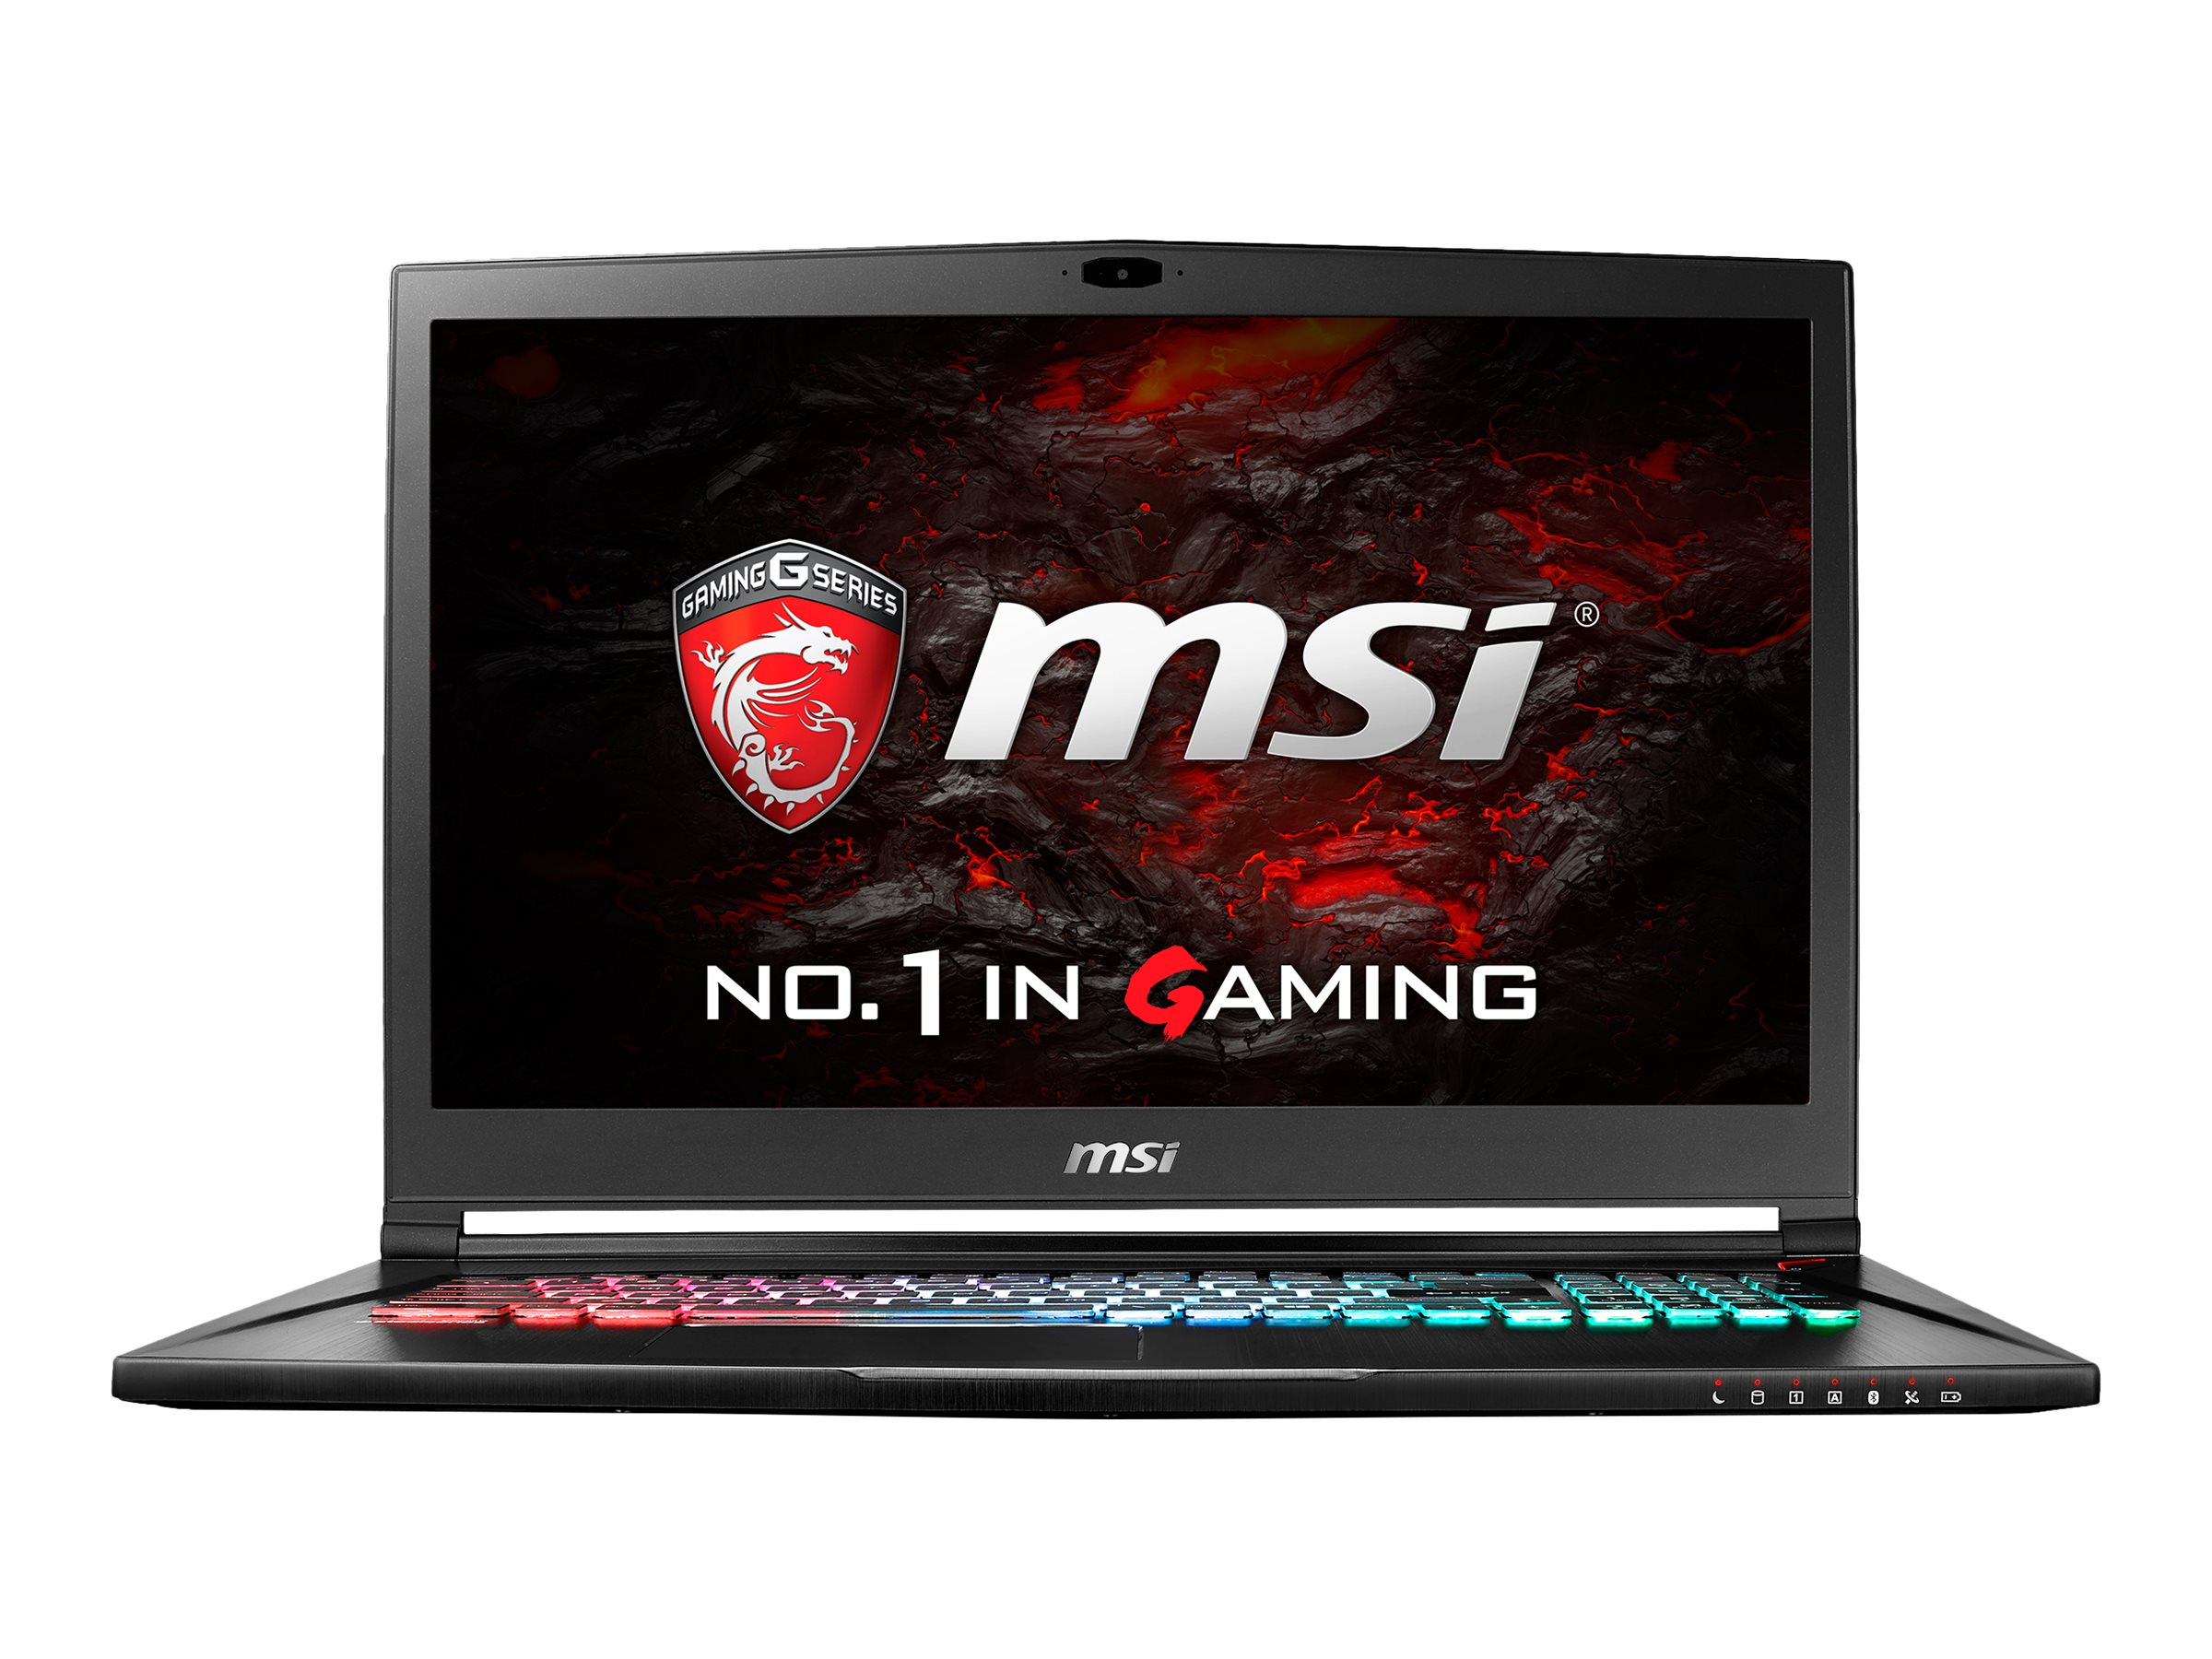 MSI Computer GS73VR STEALTH PRO 4K-016 Image 2